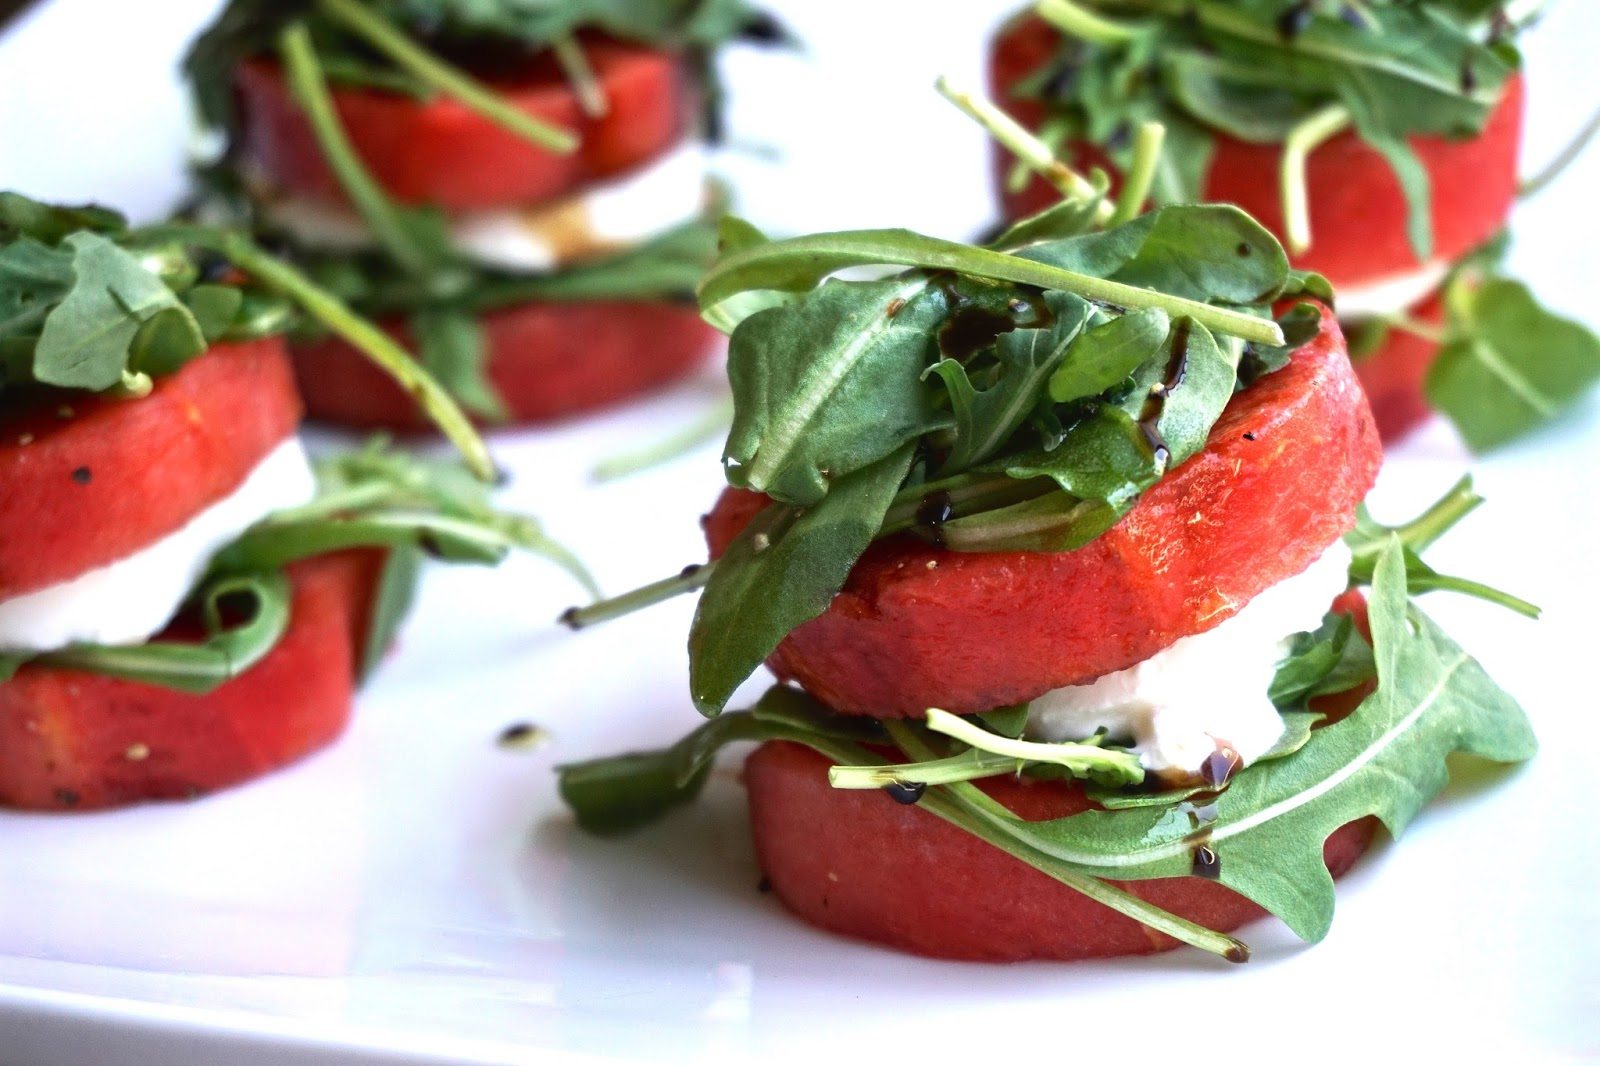 This Couple's Palate: Watermelon Salad Stacks